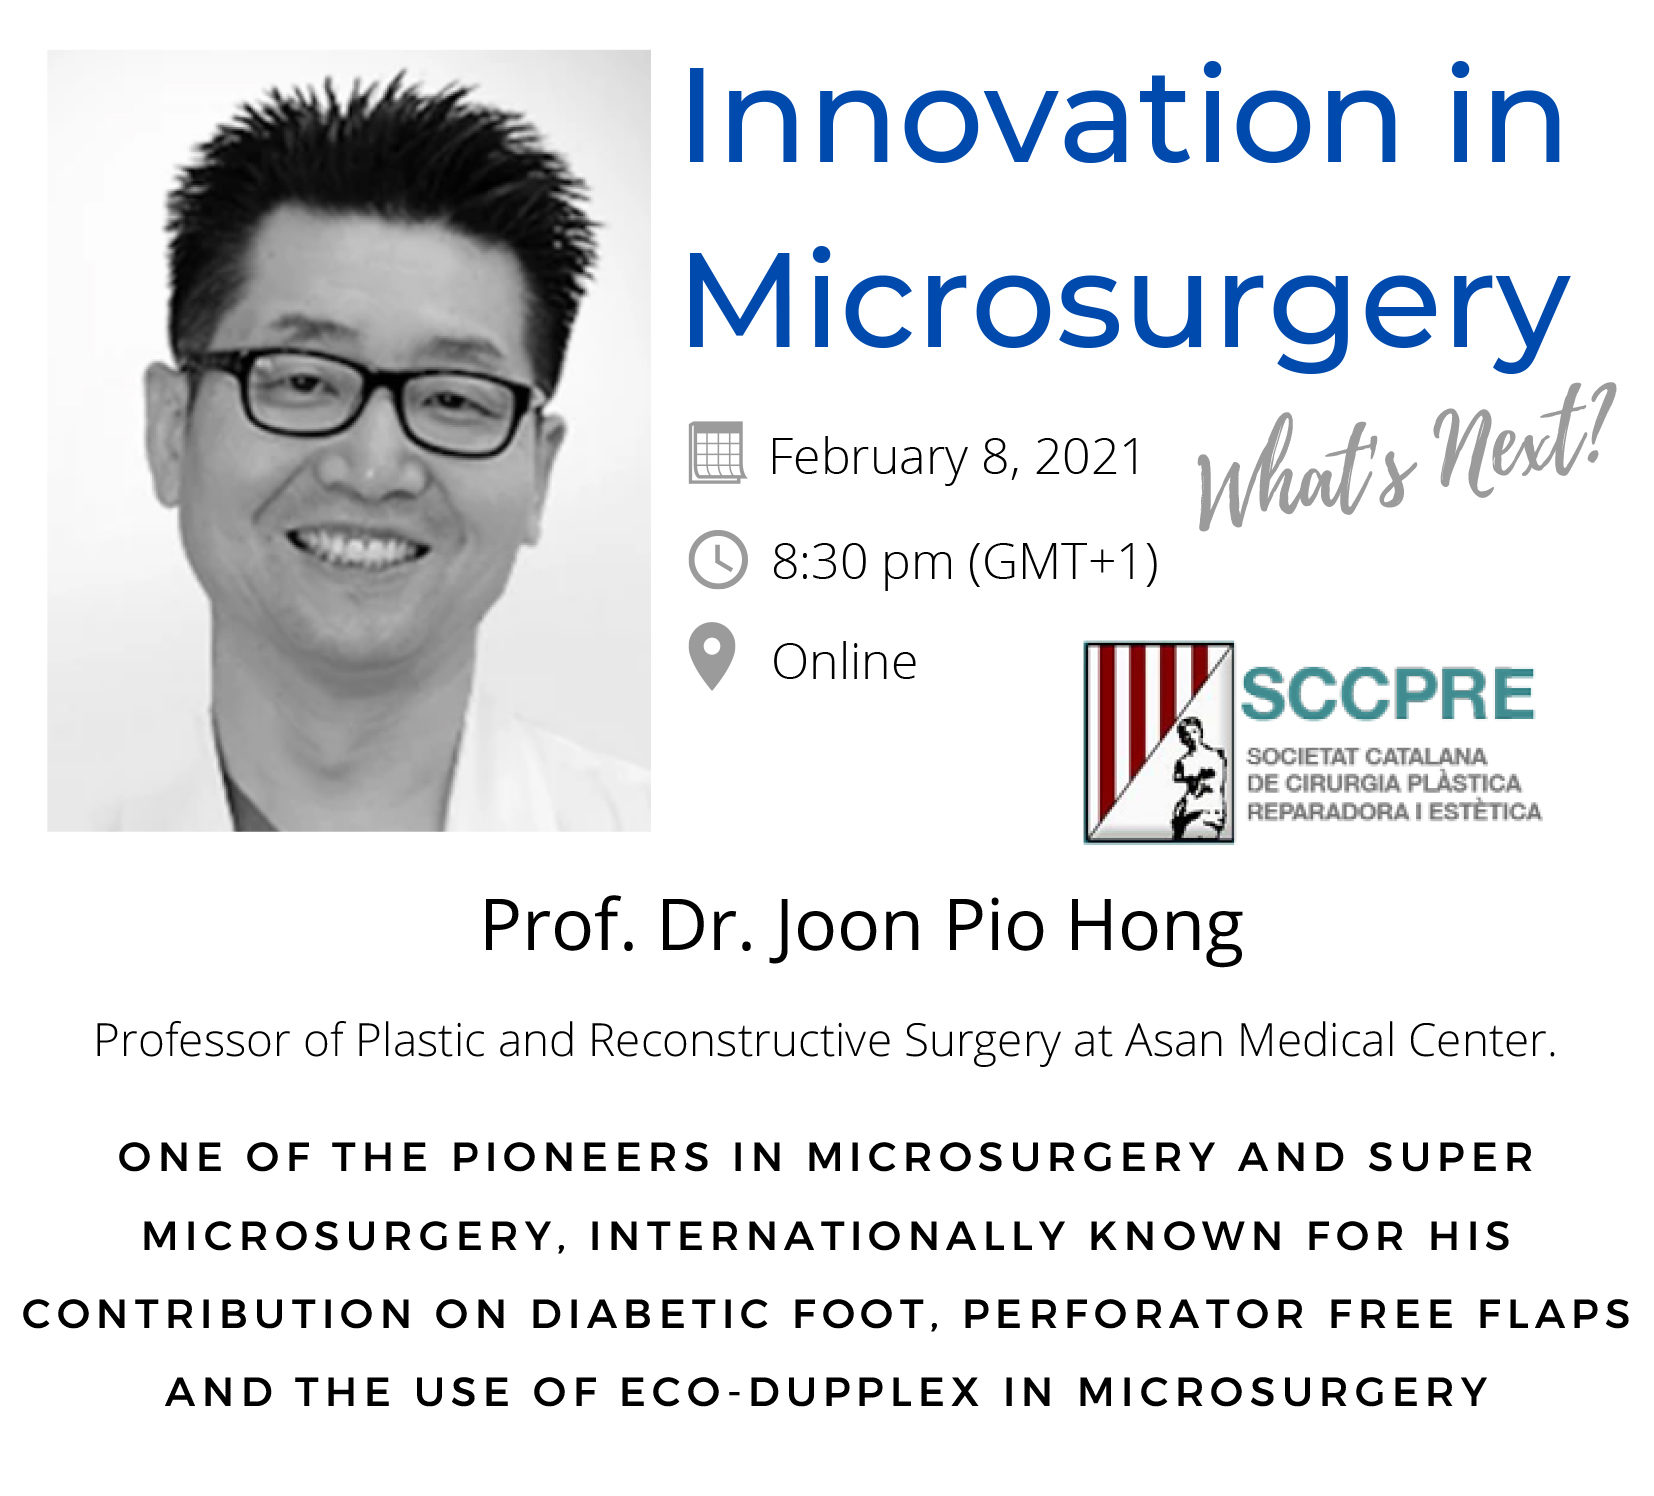 Innovation in Microsurgery